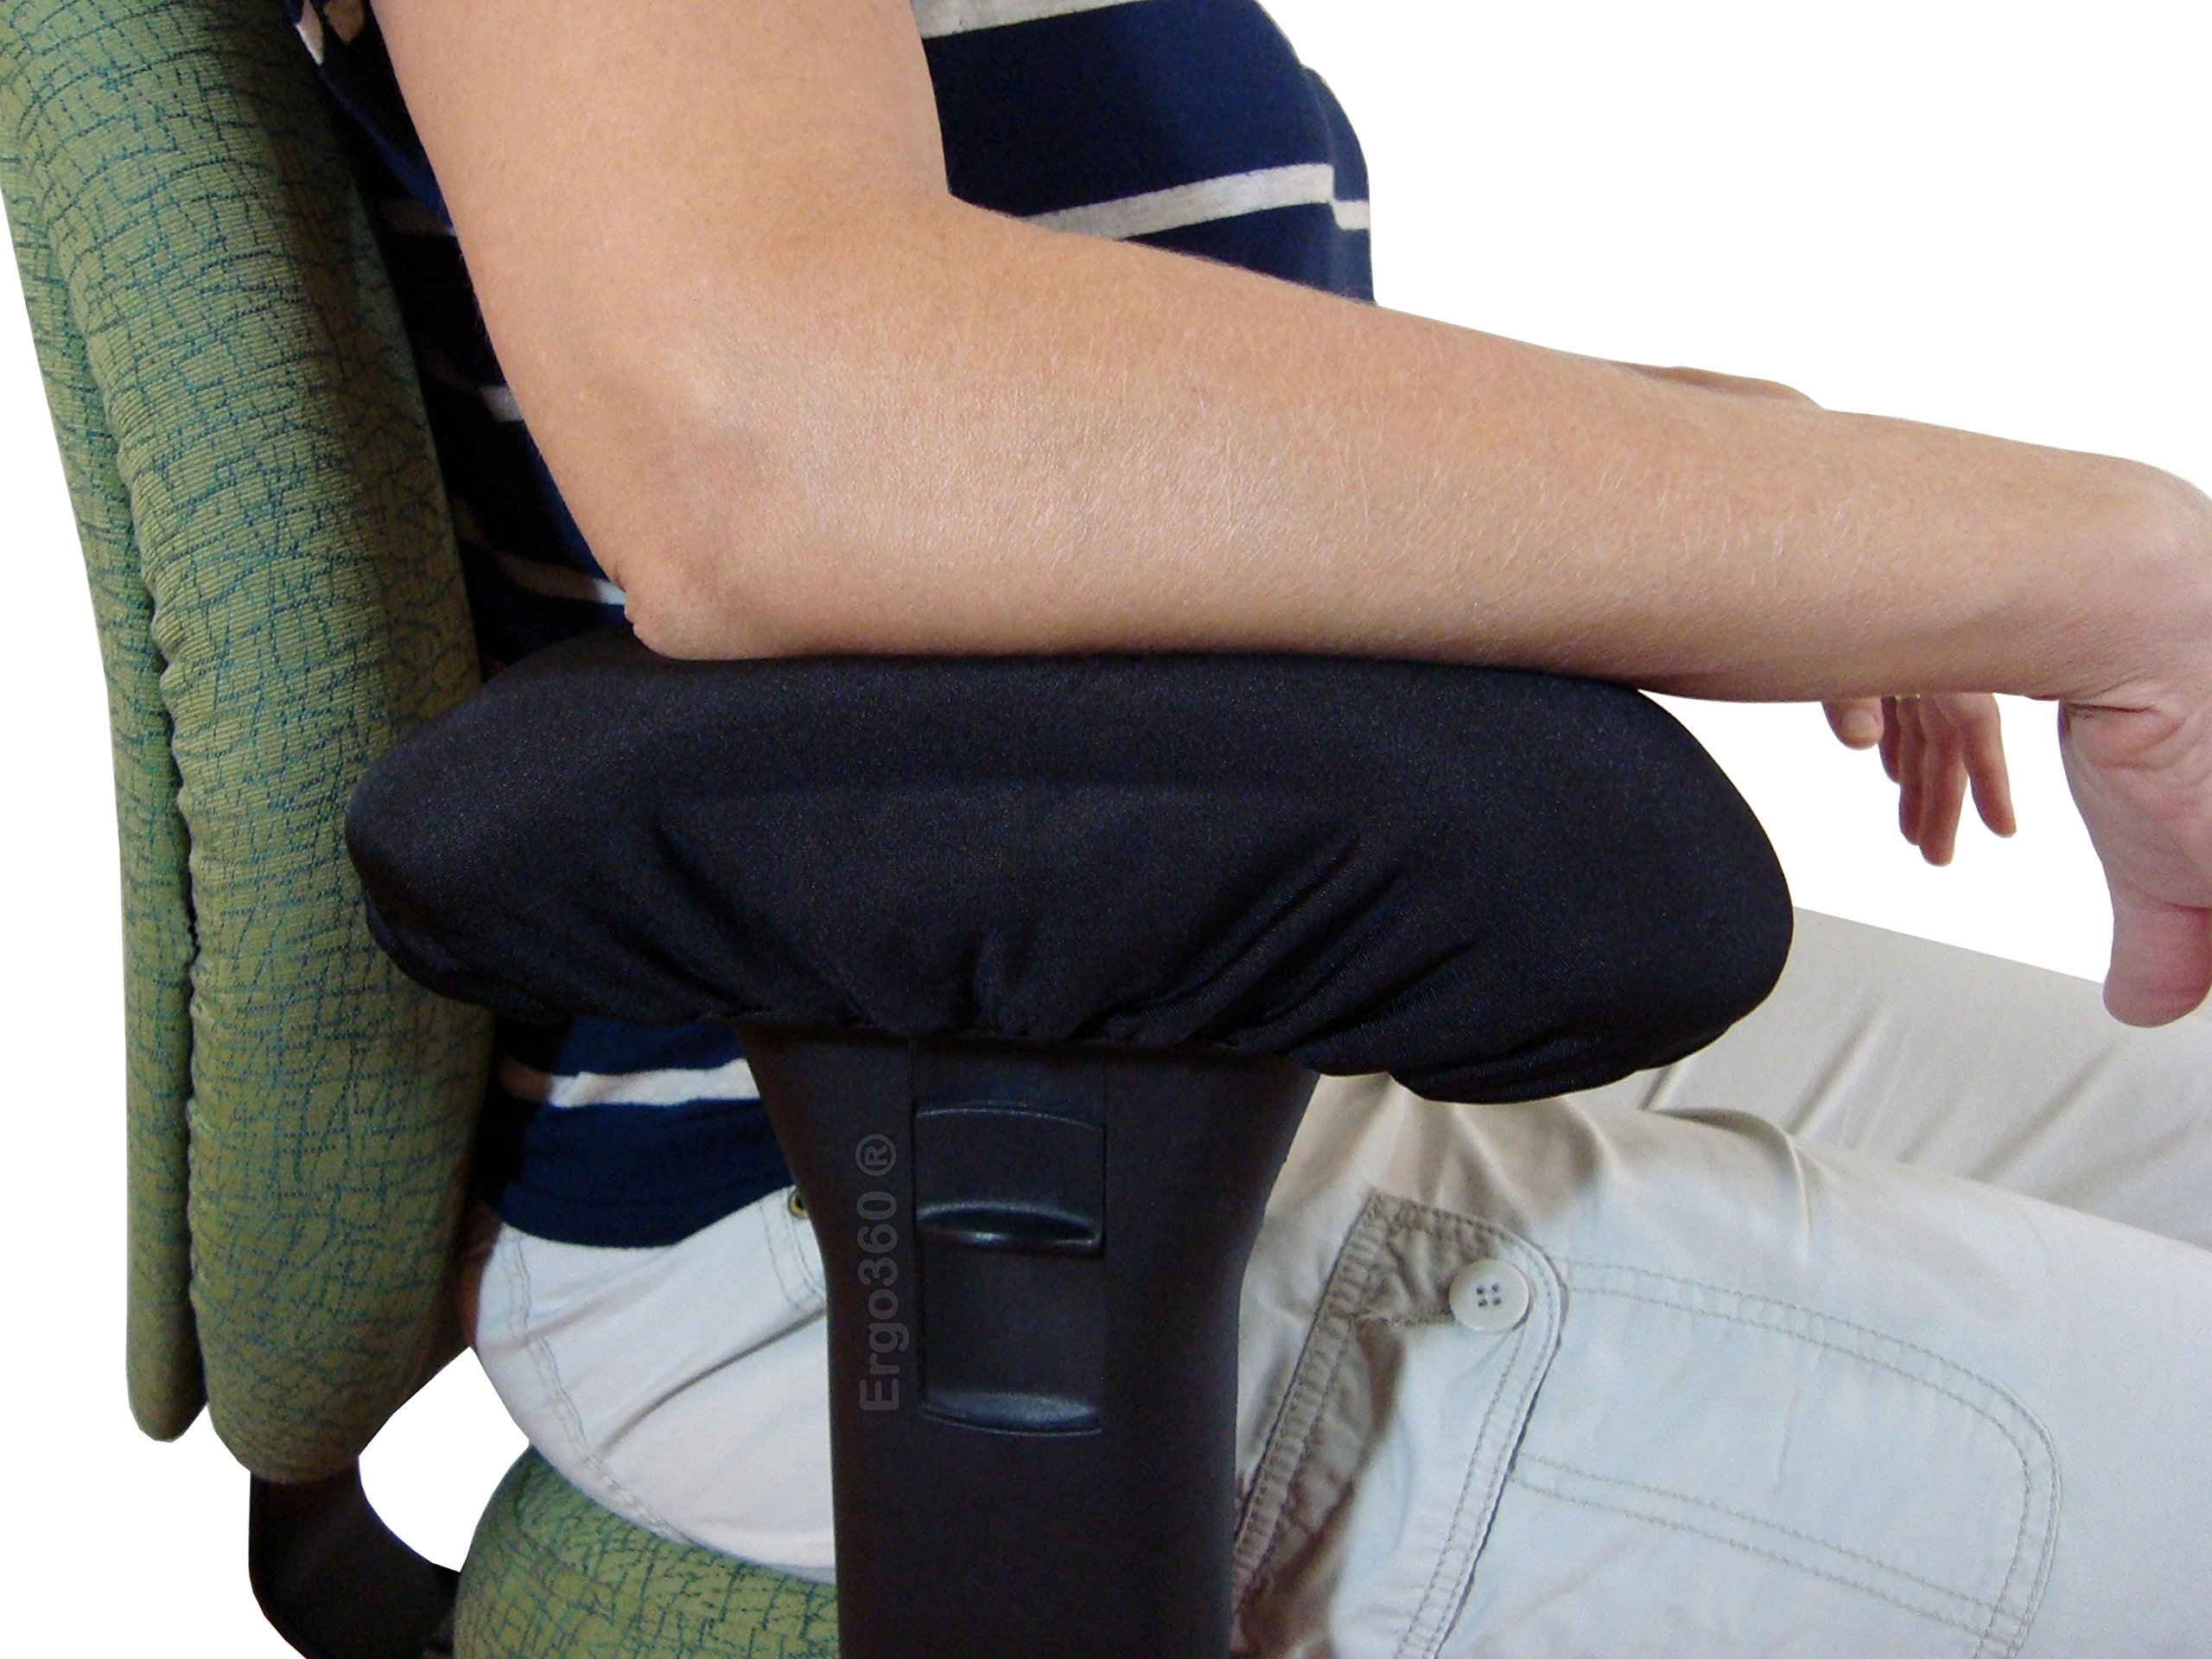 Ergo360 Chair Armrest Arm Pad Covers - Genuine High Density Memory Foam for Ultimate Elbow Comfort (2 Piece Set) by Ergo360